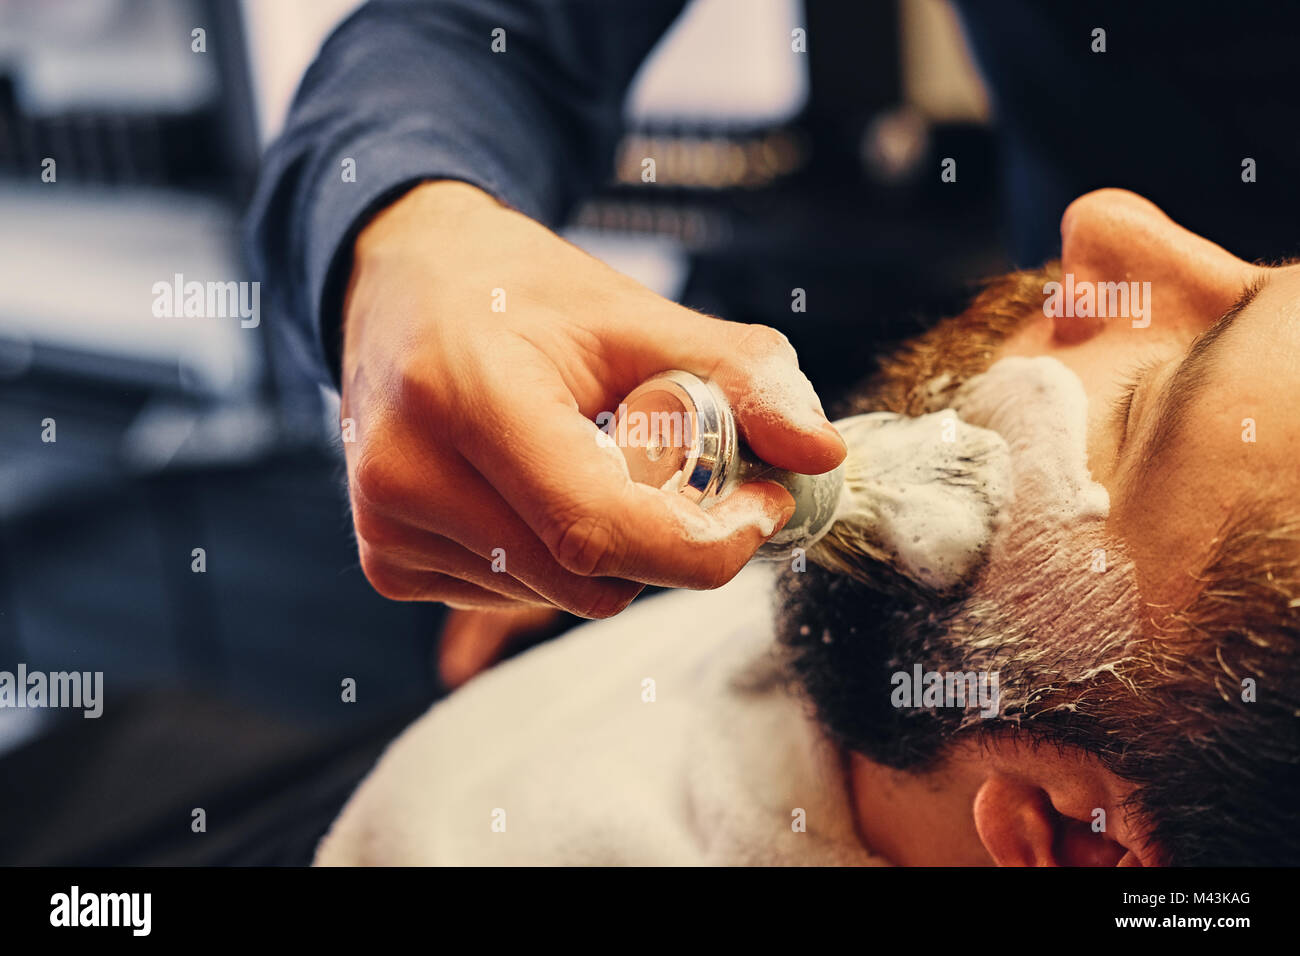 Close up image of barber shaving - Stock Image